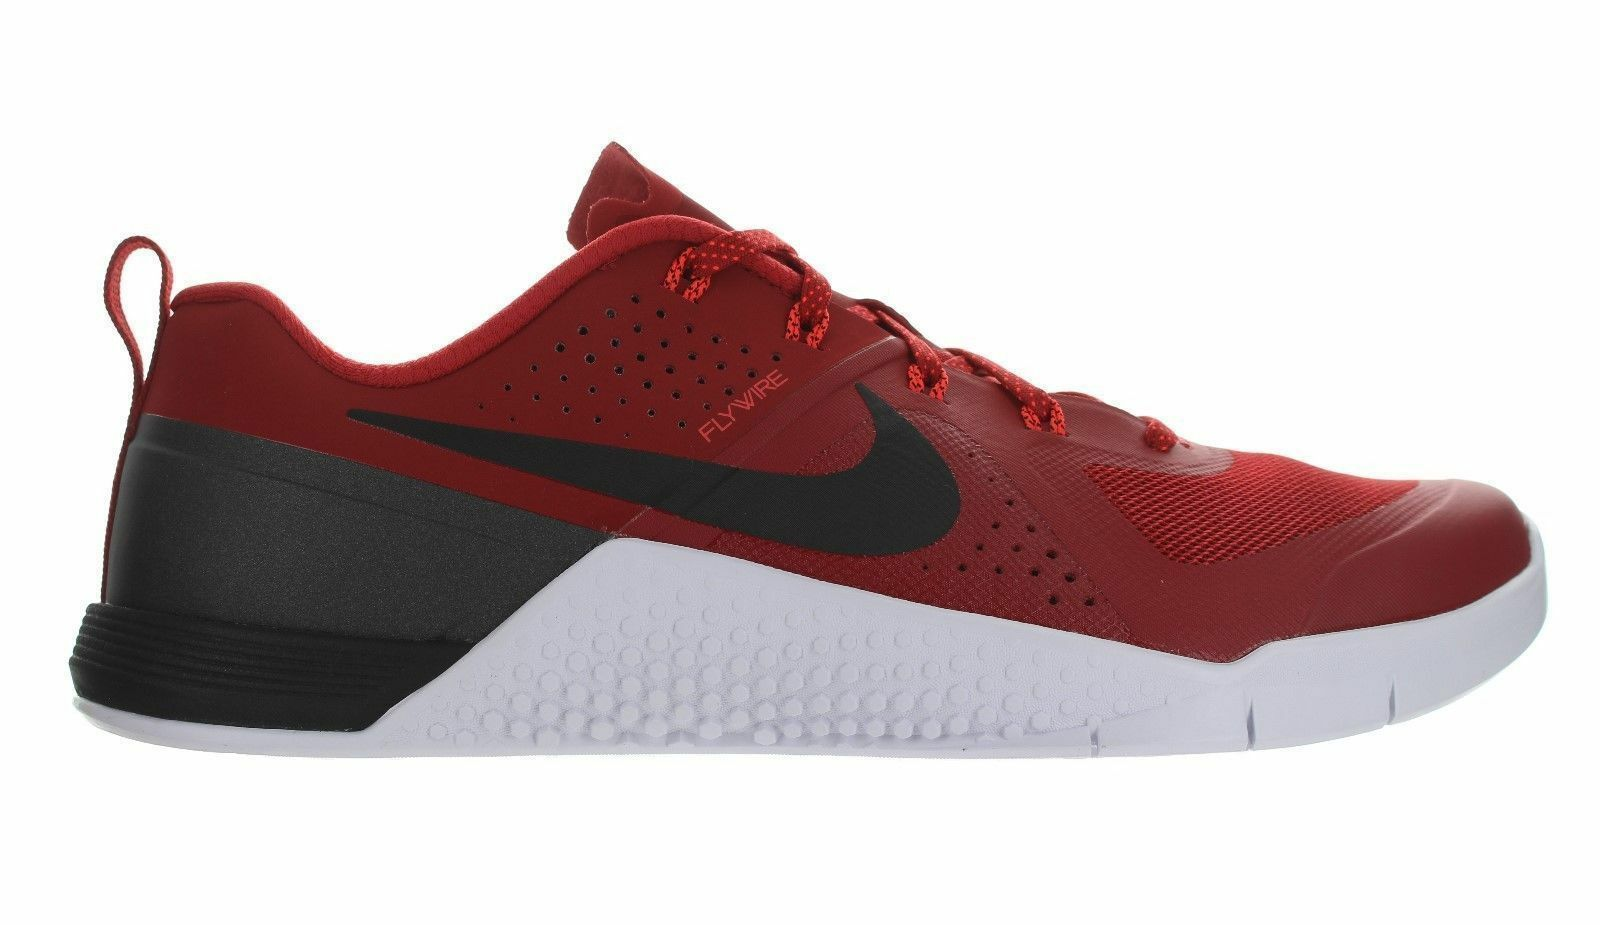 quality design 14dd0 62275 ... NEW NEW NEW NIKE METCON 1 (BLACK RED WHITE) 704688-616 ...